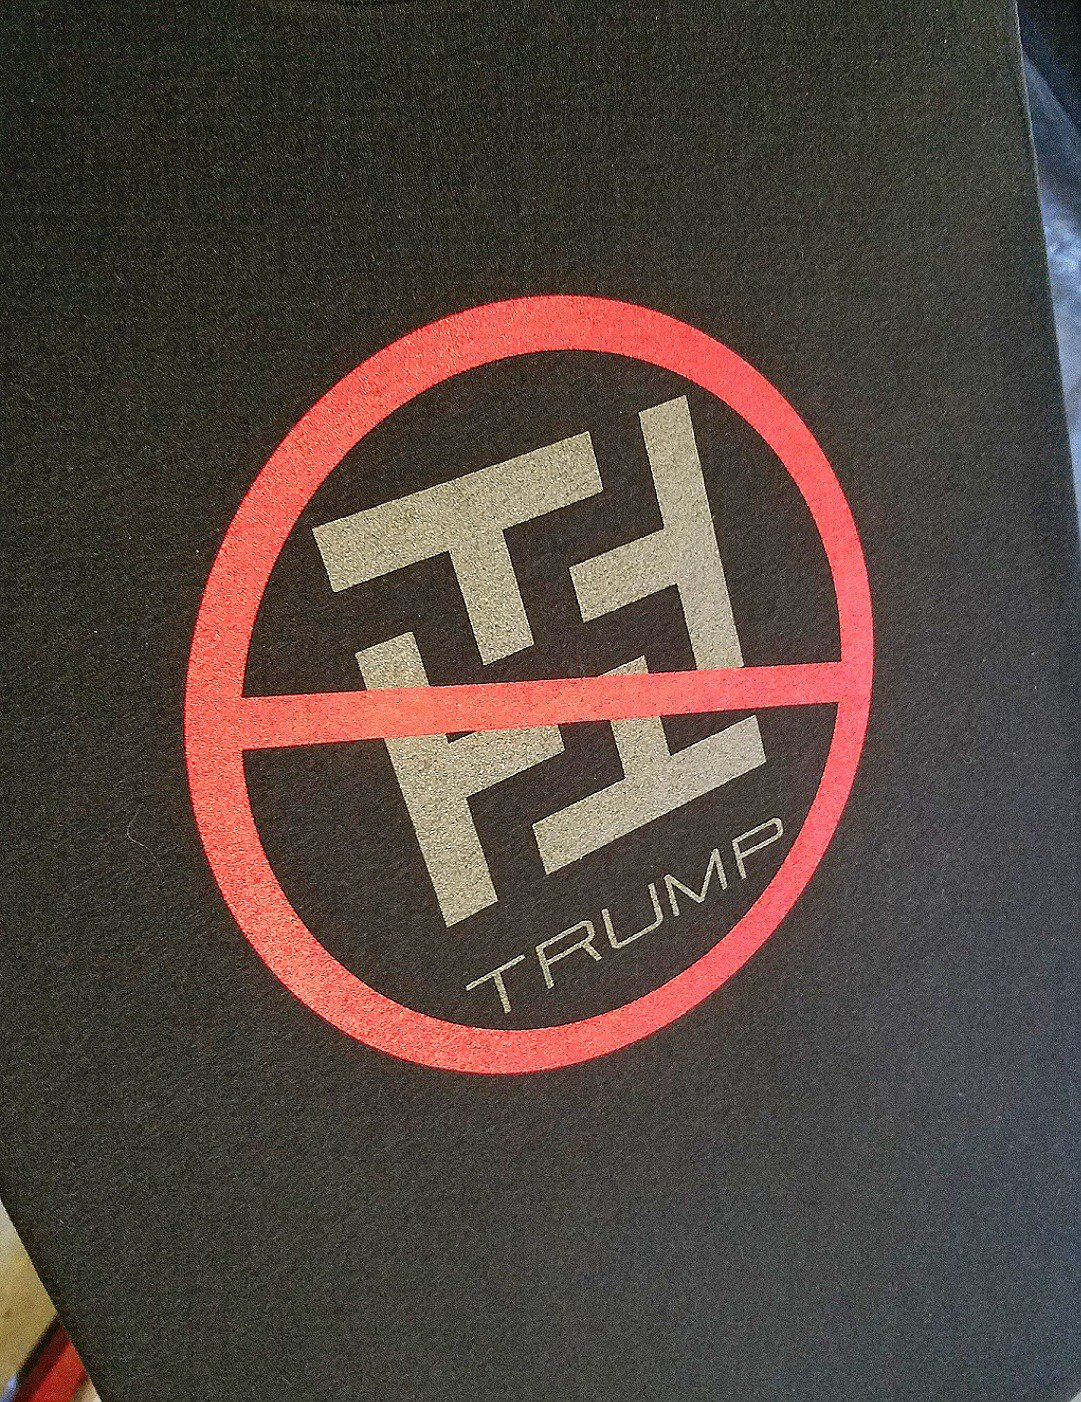 No Nazis No Trump - RESIST TRUMP FASCISM - Premium Sueded Shirt SIZE L